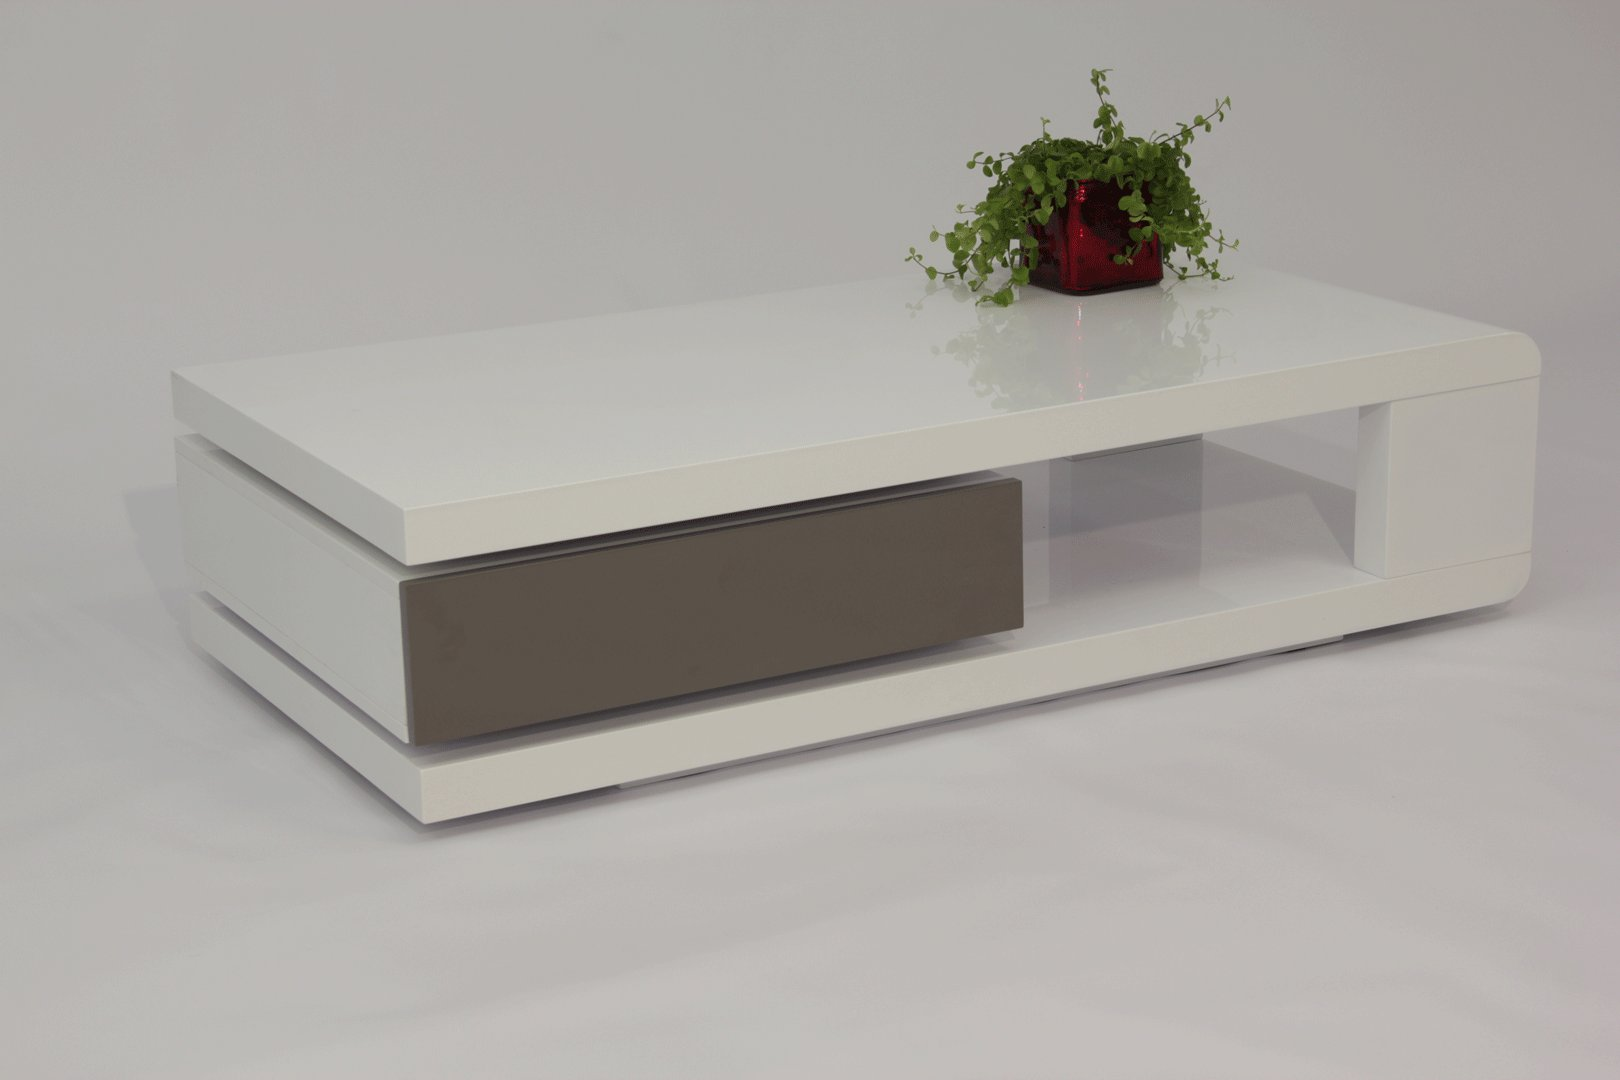 Table Basse Design Laquee Blanche Et Grise Jawa Matelpro